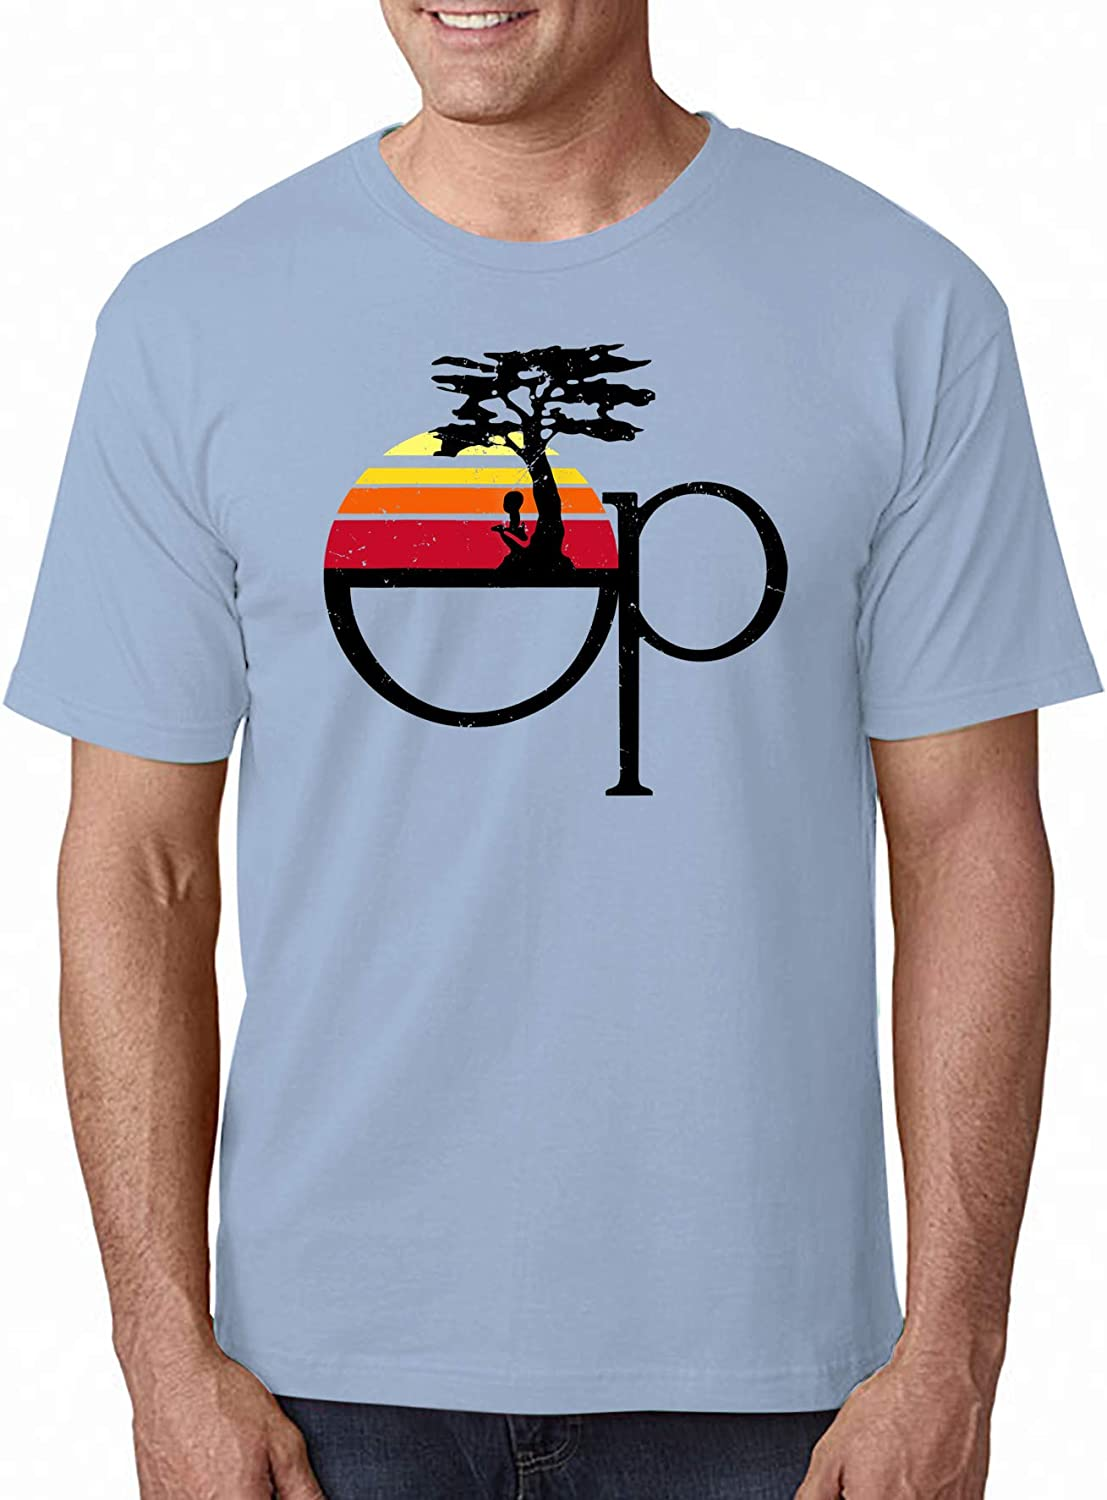 Ocean Pacific Vintage 80s Surfwear Funny Vintage Trending Awesome Gift